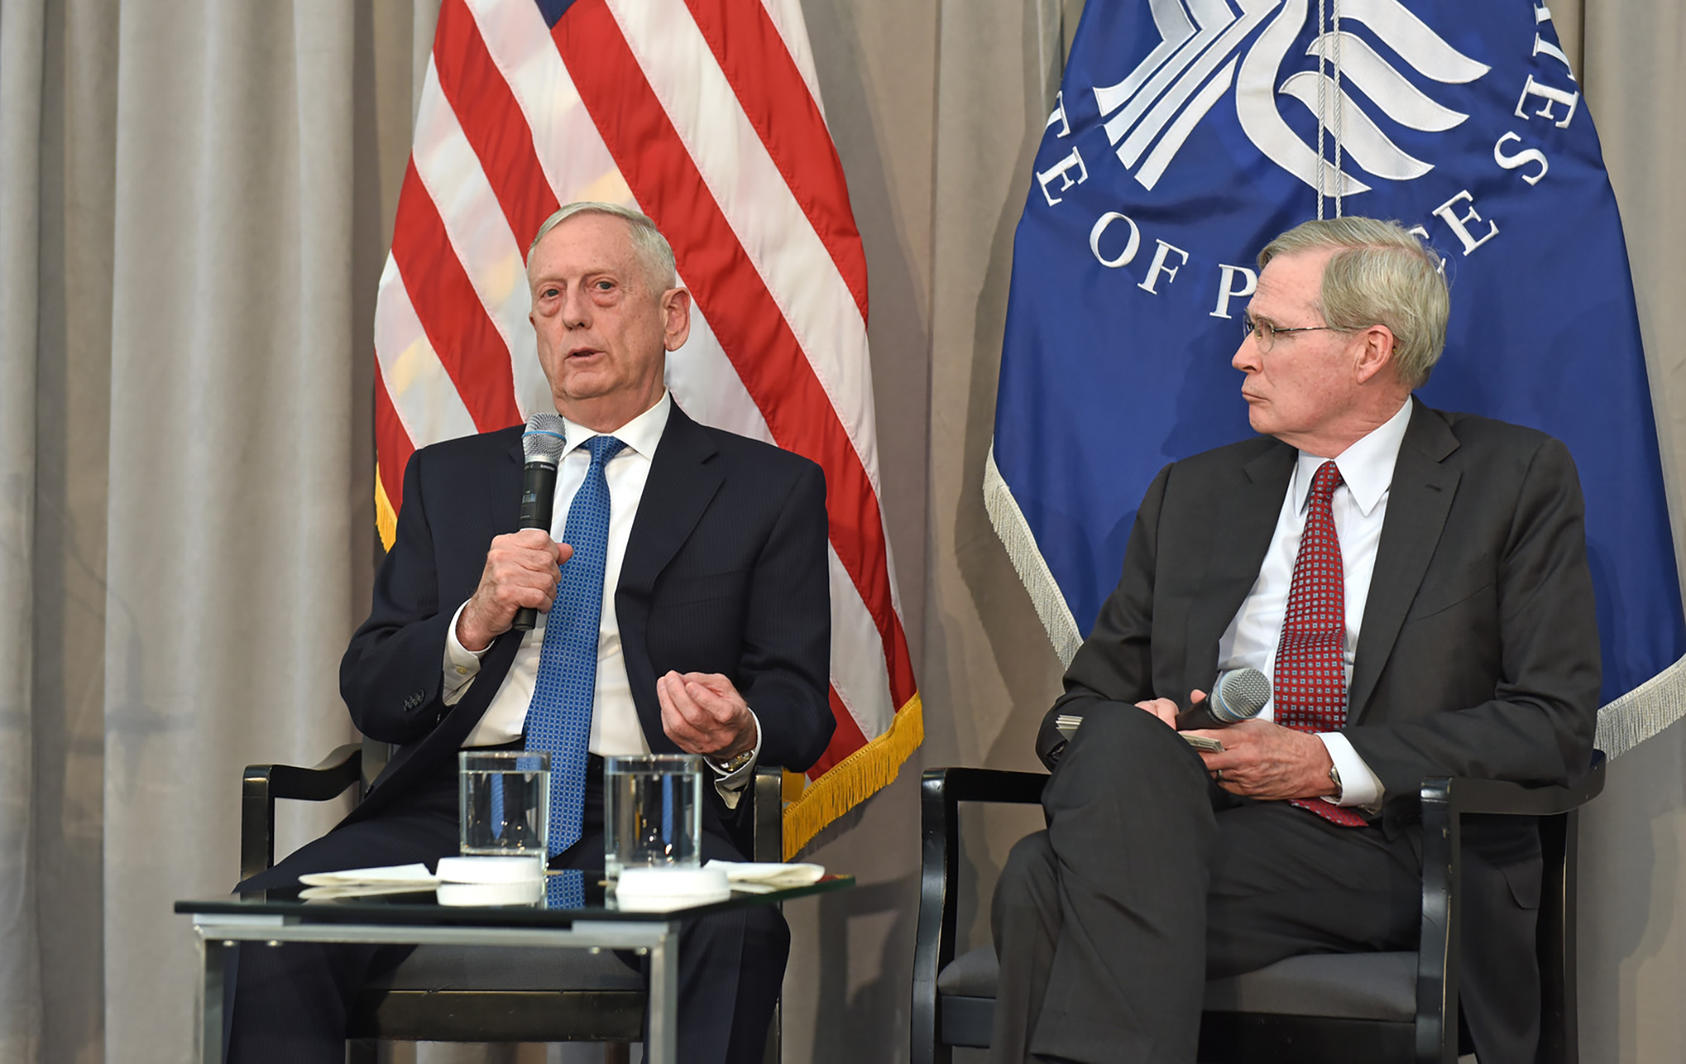 James Mattis and Stephen Hadley